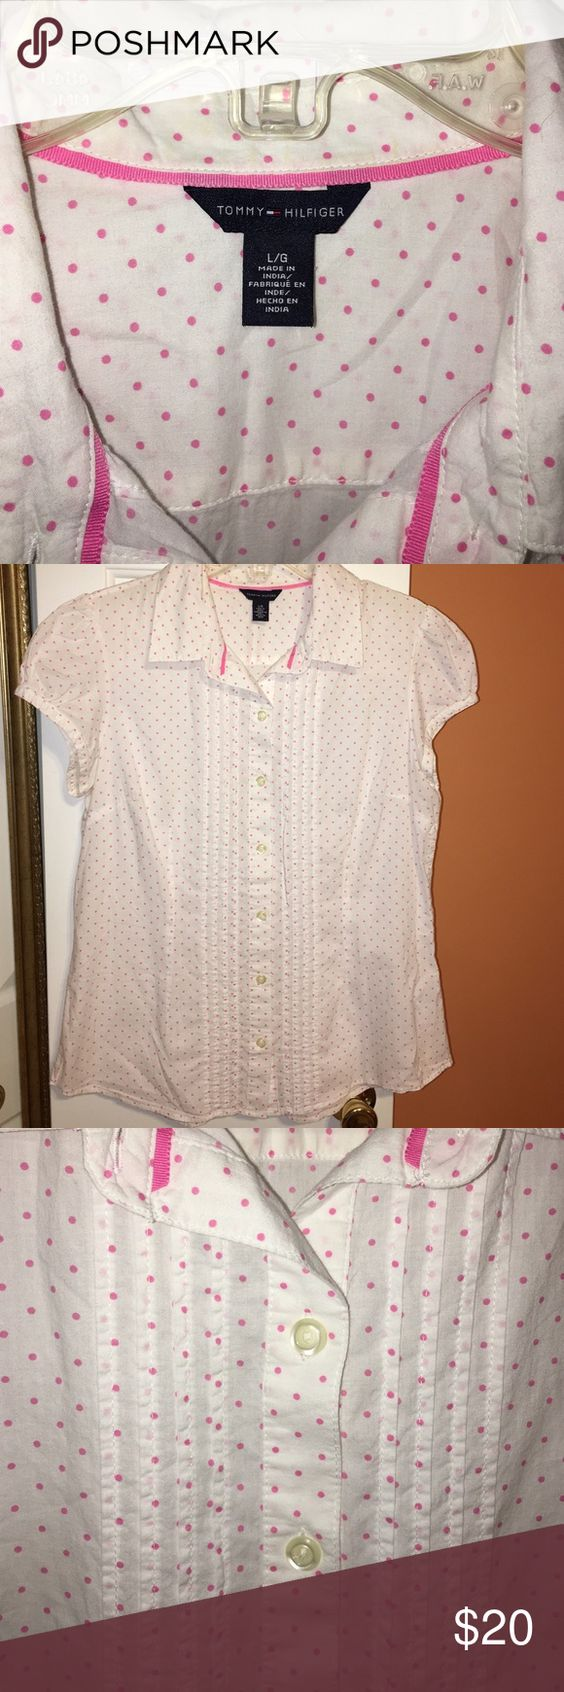 Button down light cotton blouse White with pink polka dots button down and pleats on the front. Capped sleeves- EXCELLENT CONDITION Tommy Hilfiger Tops Button Down Shirts